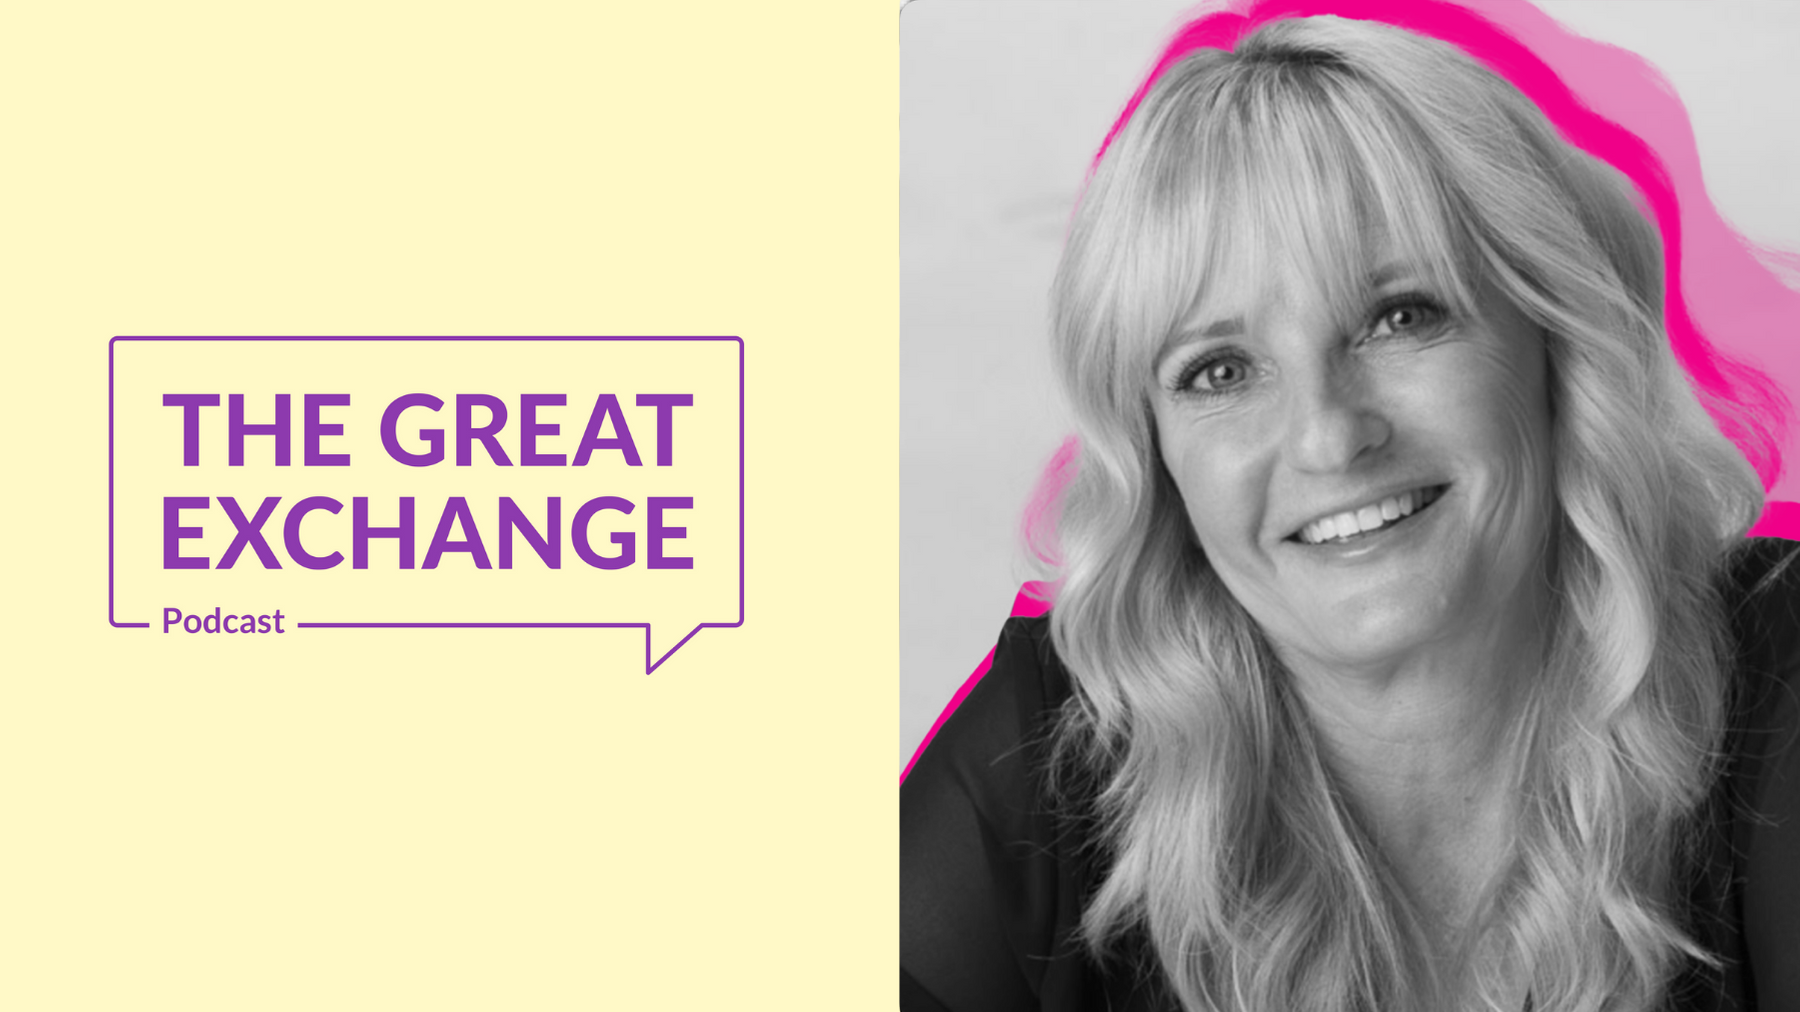 Education thought-leader, international speaker, and best selling author Holly Clark